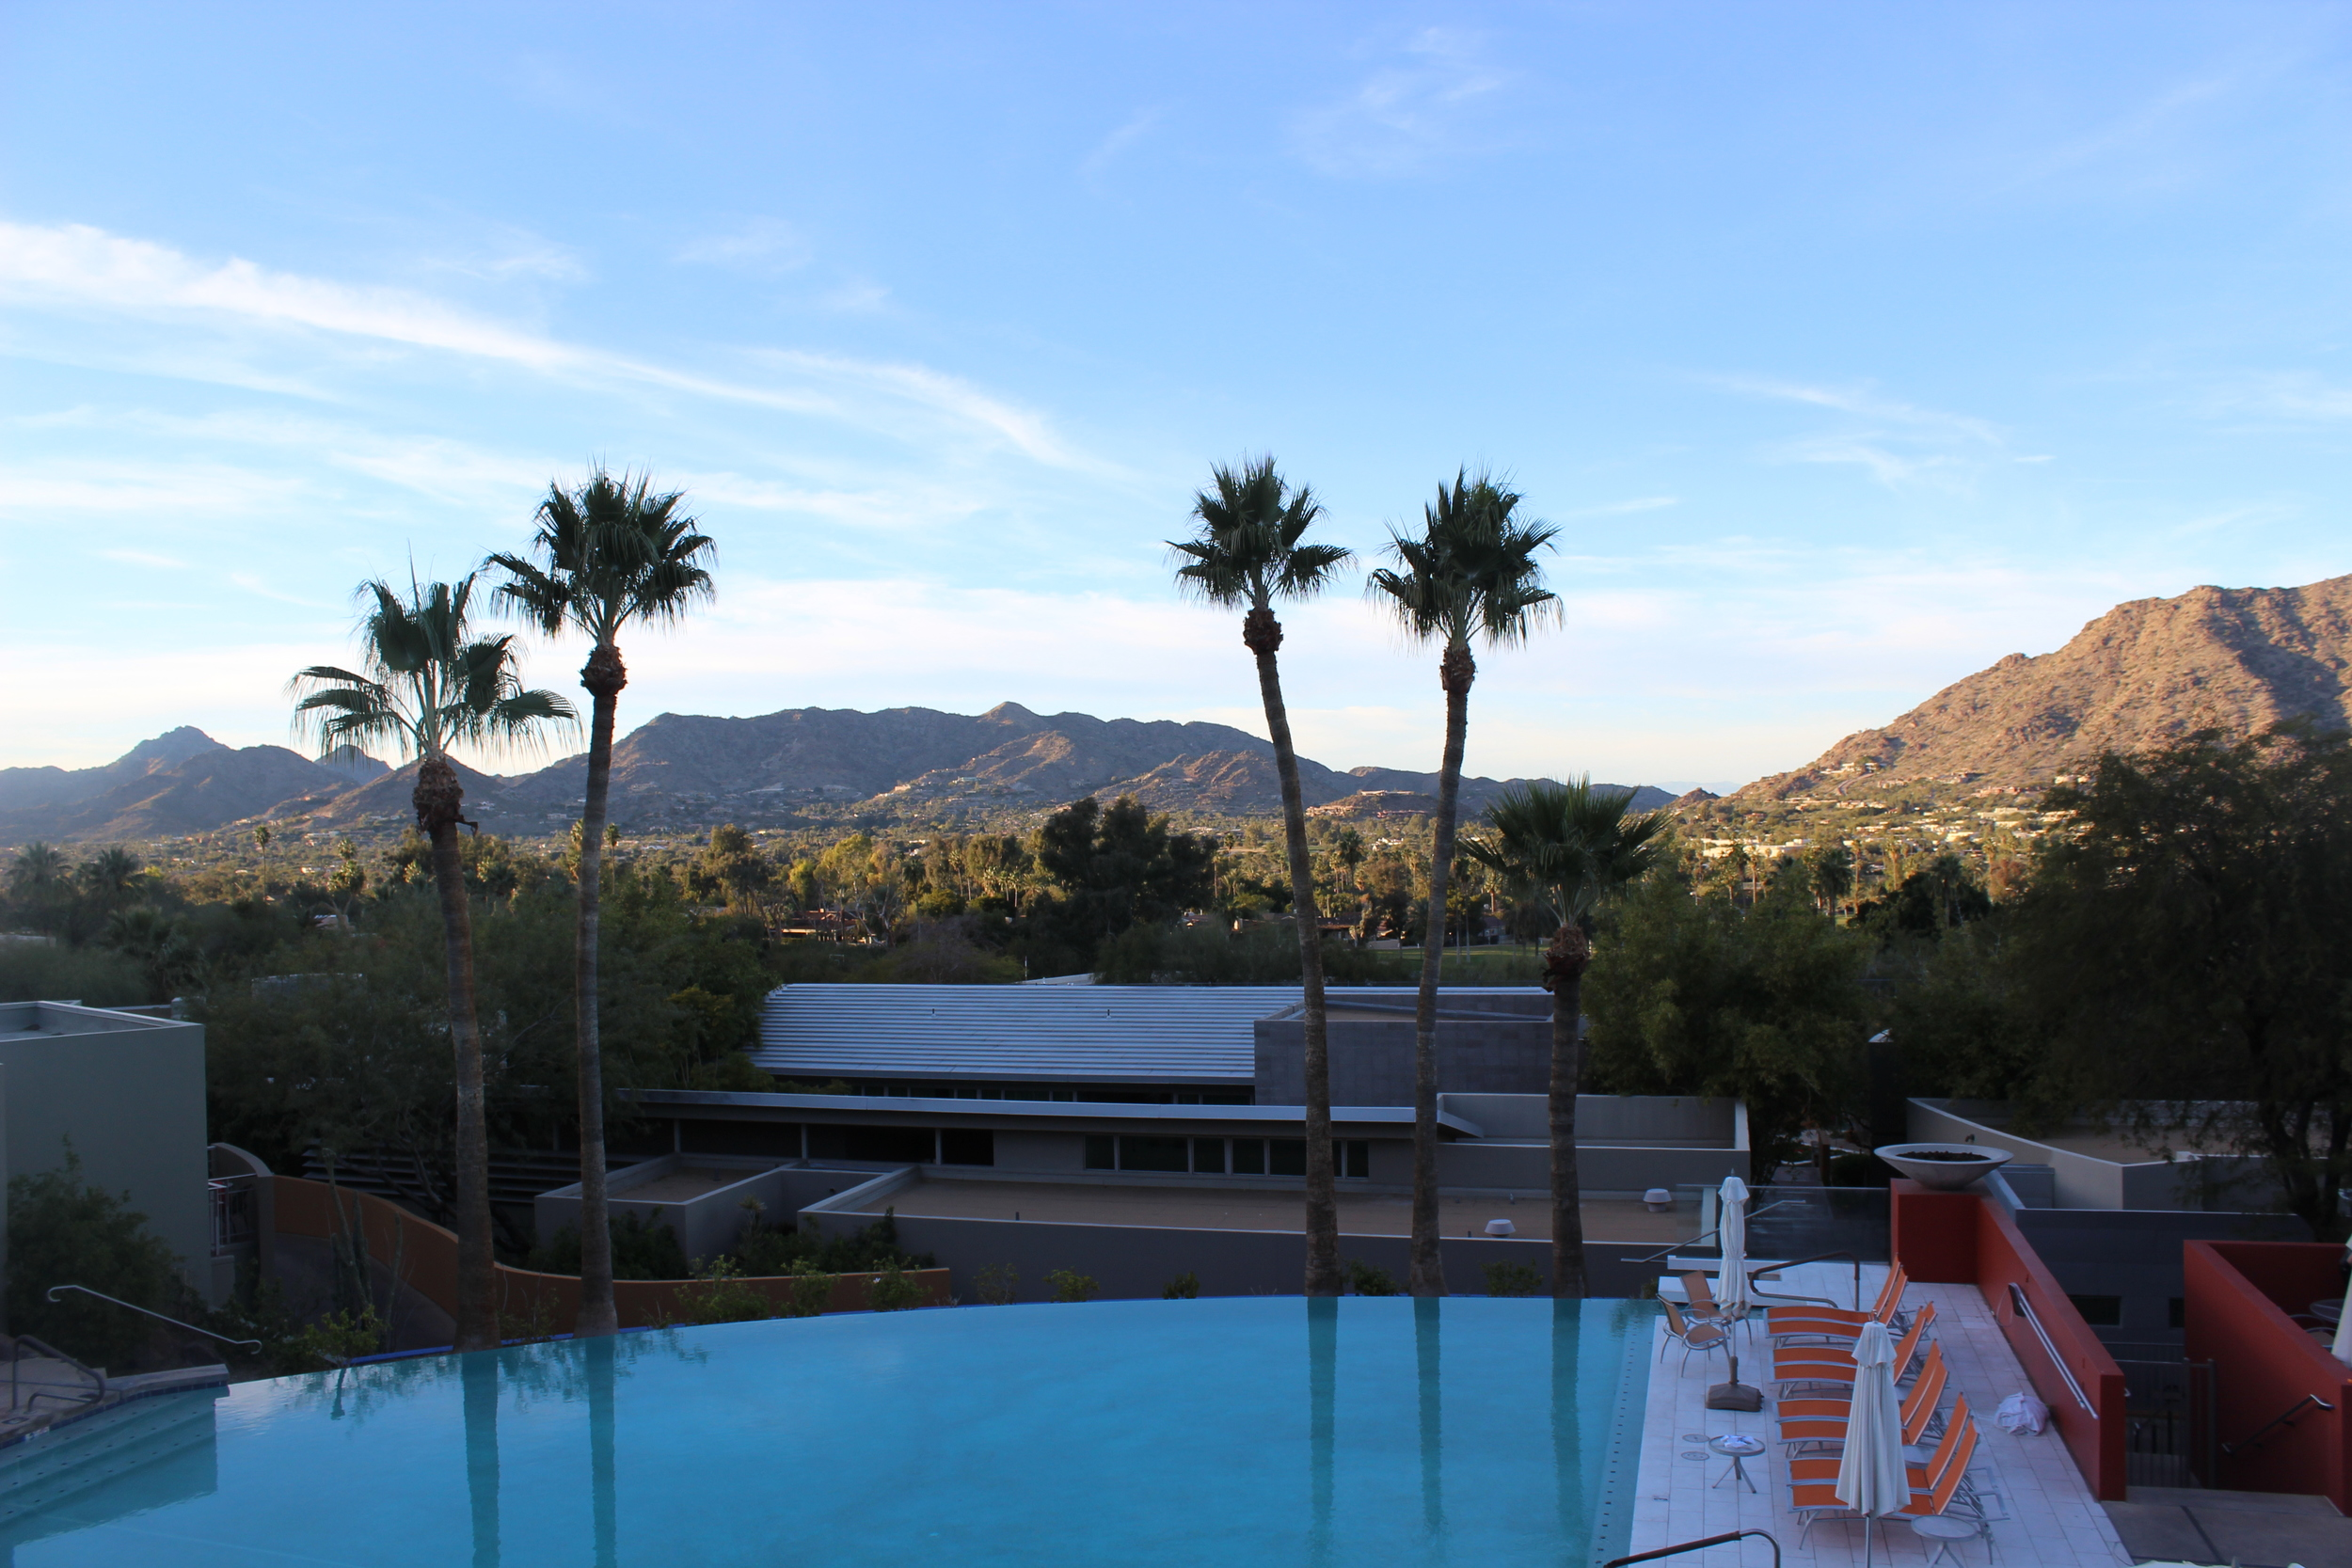 Beautiful hometown: Scottsdale, Arizona